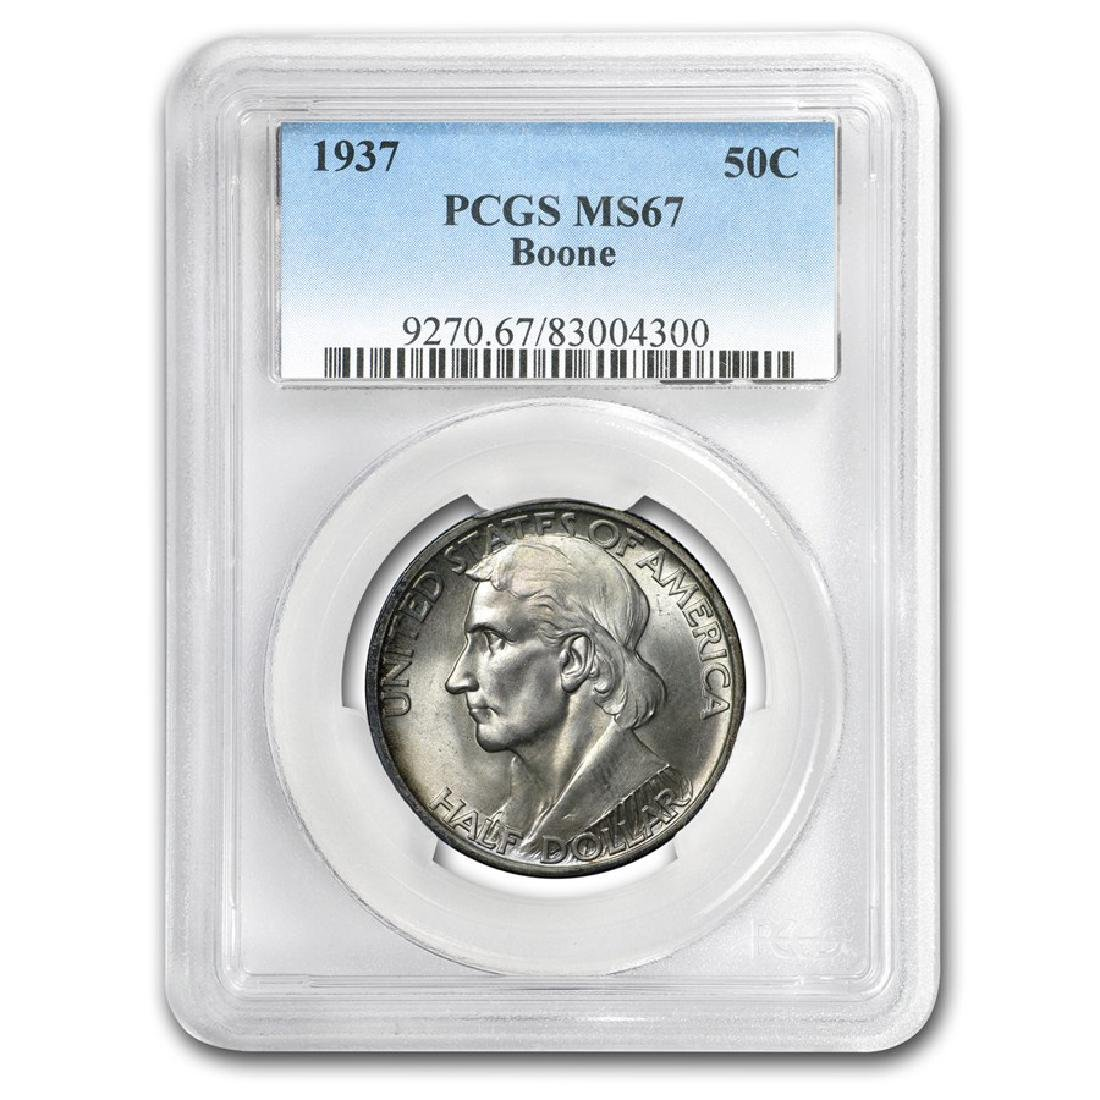 1937 Bonne Commemorative Half Dollar Coin PCGS MS67